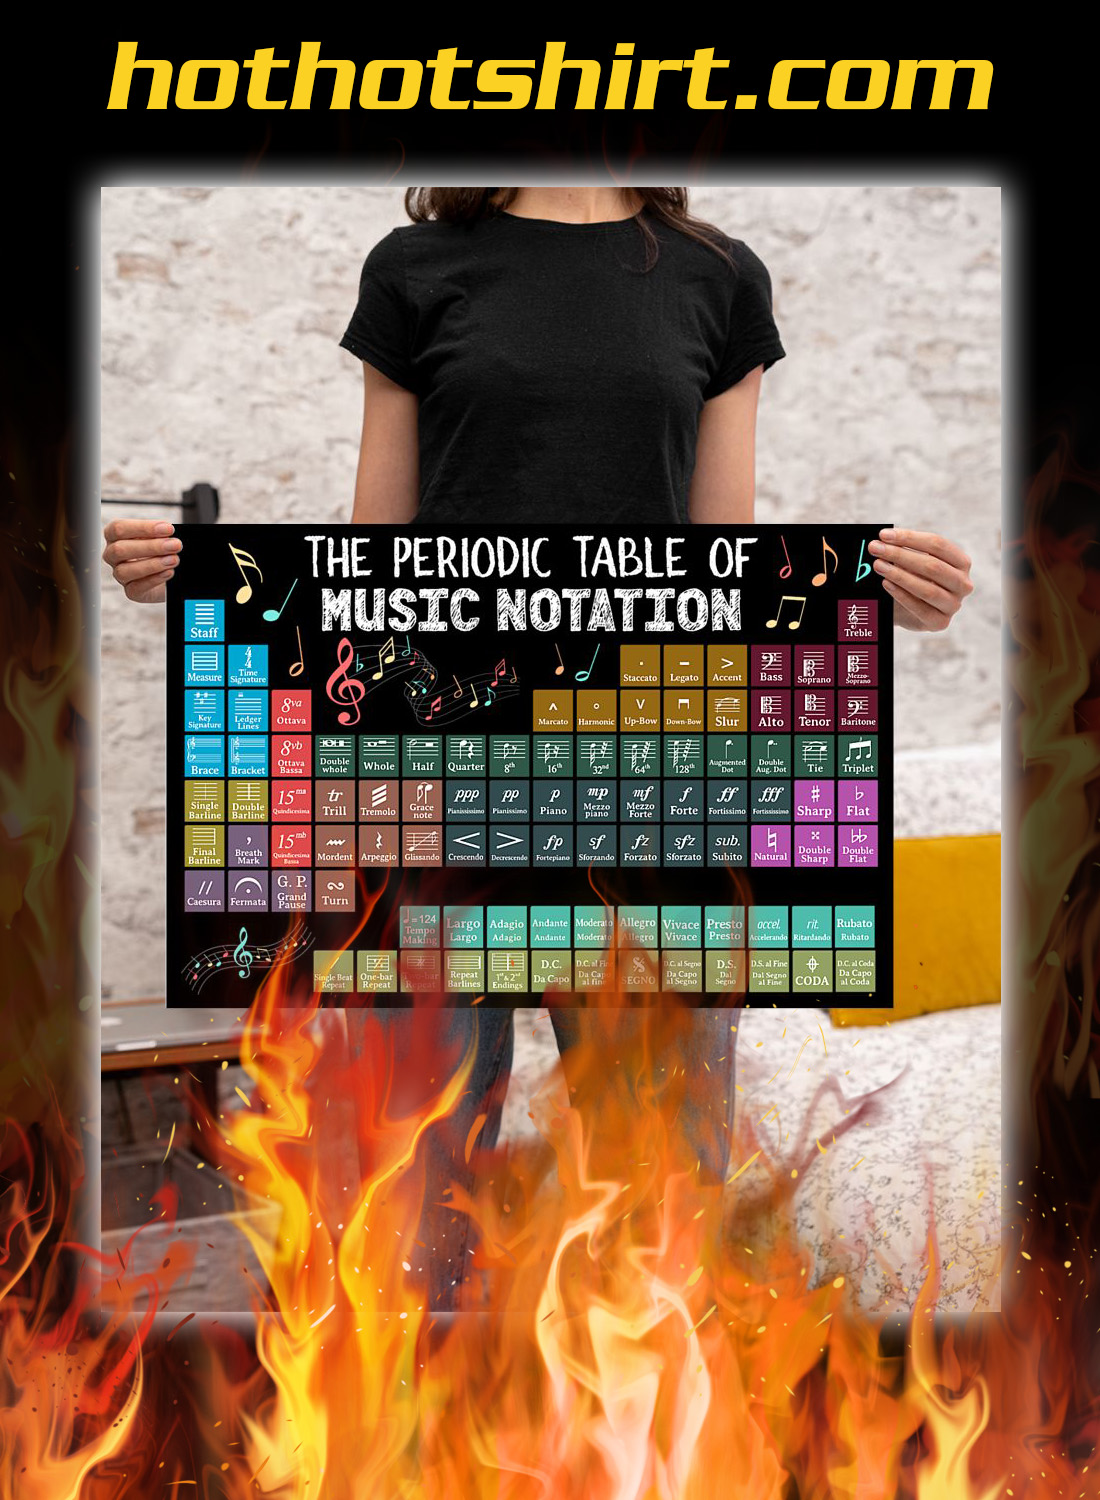 The periodic table of music notation poster 3